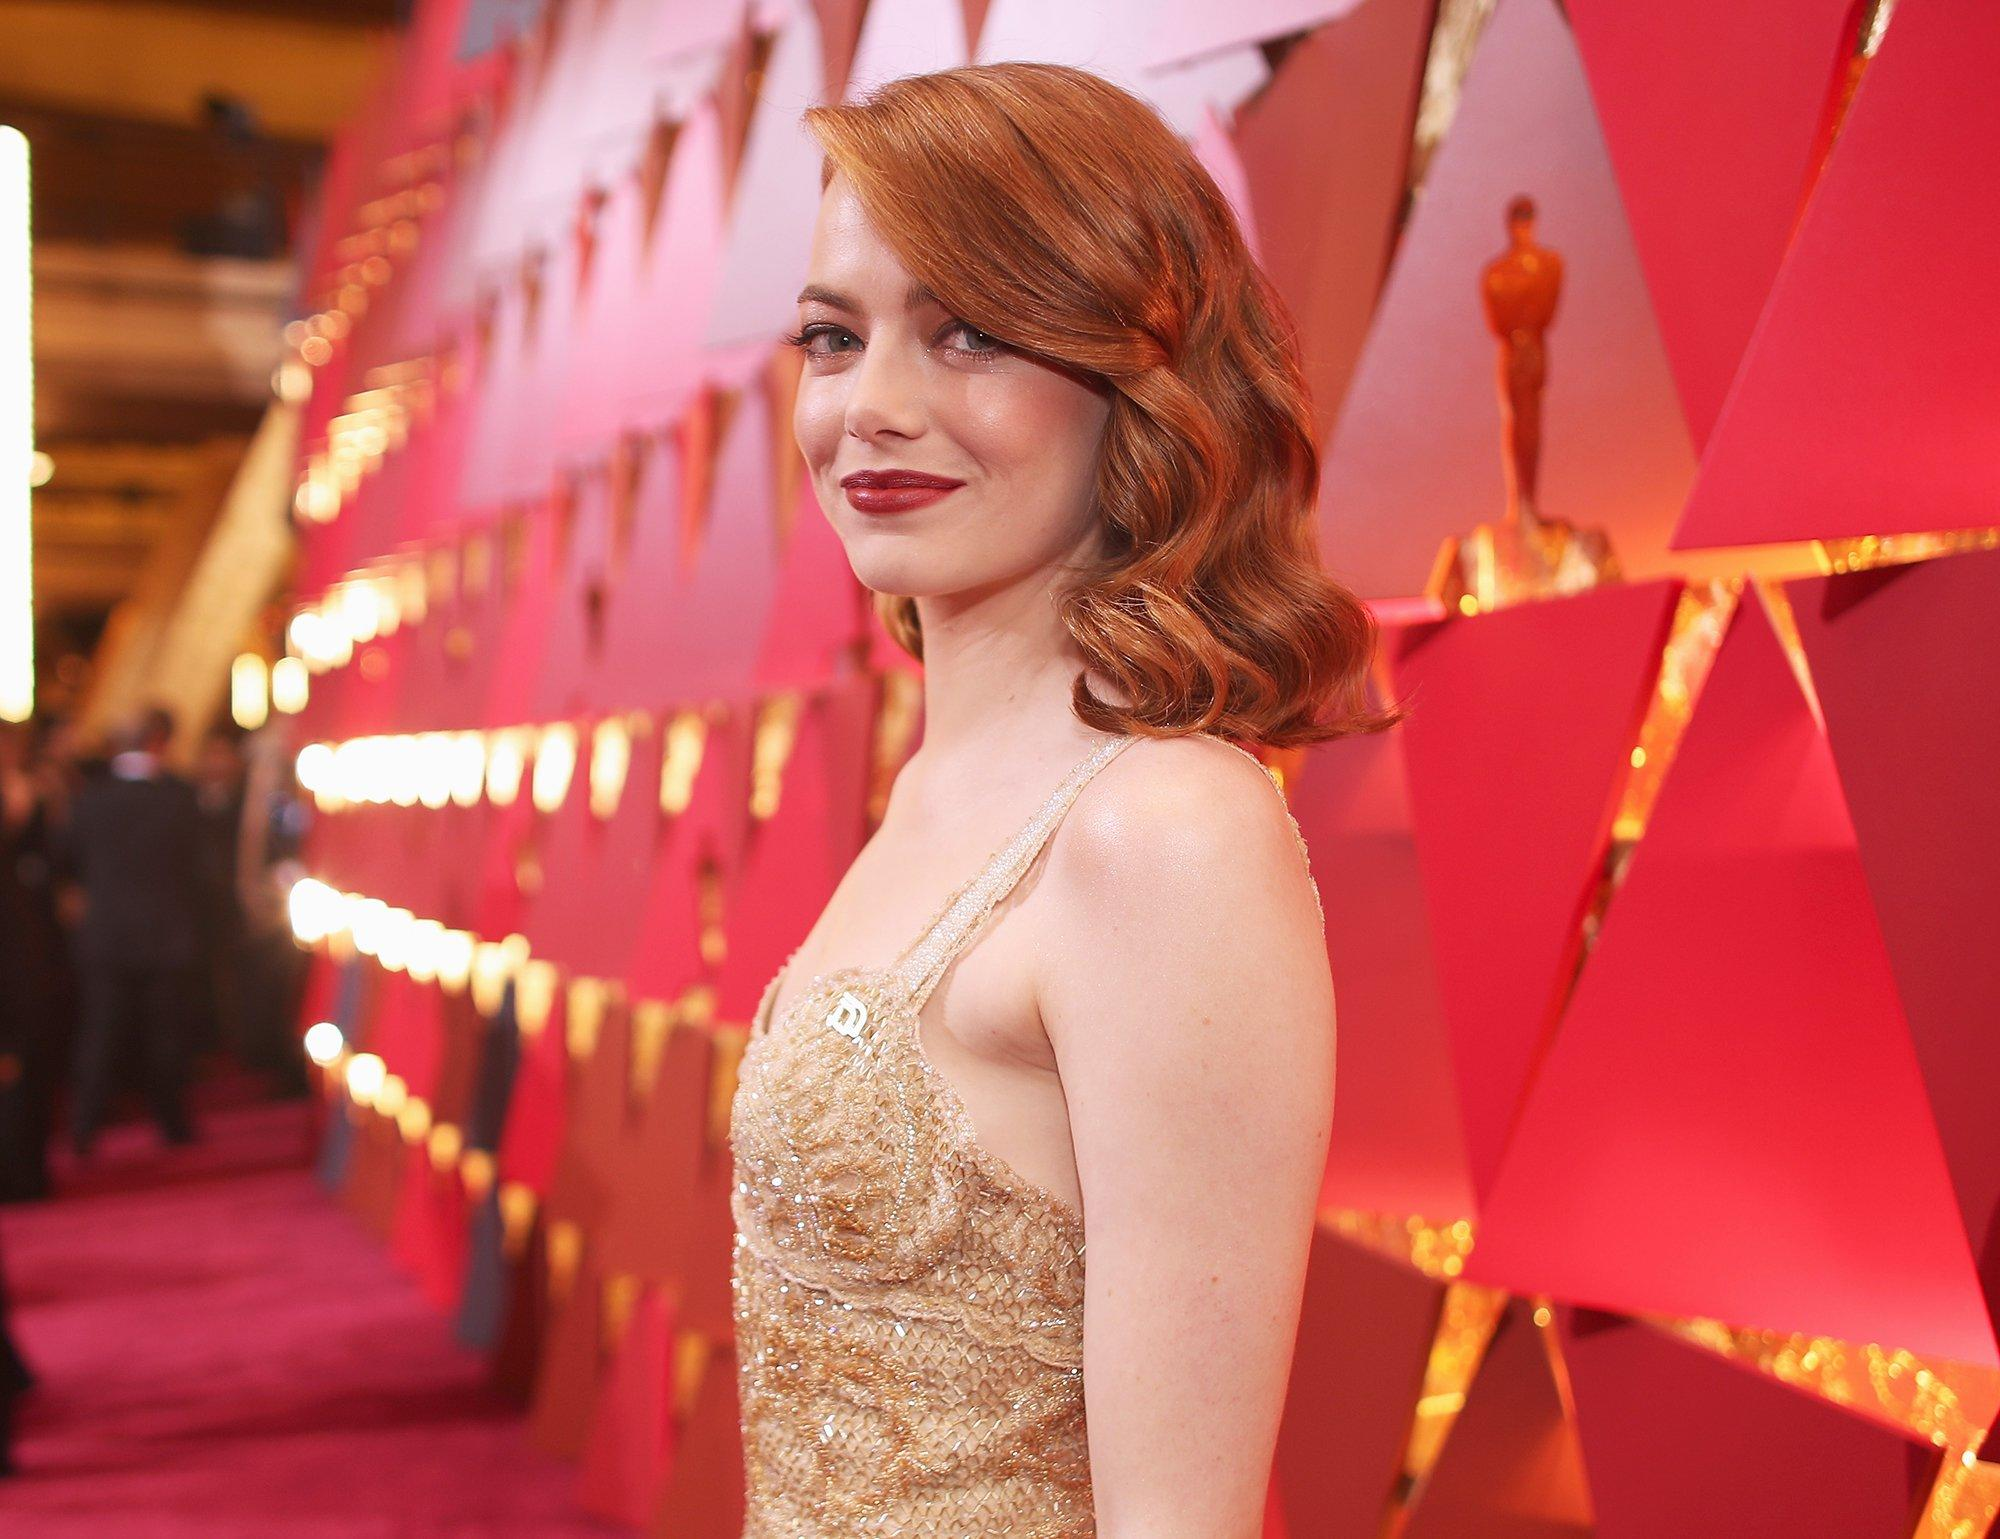 emma stone made a political statement with her accessories before the oscars even began